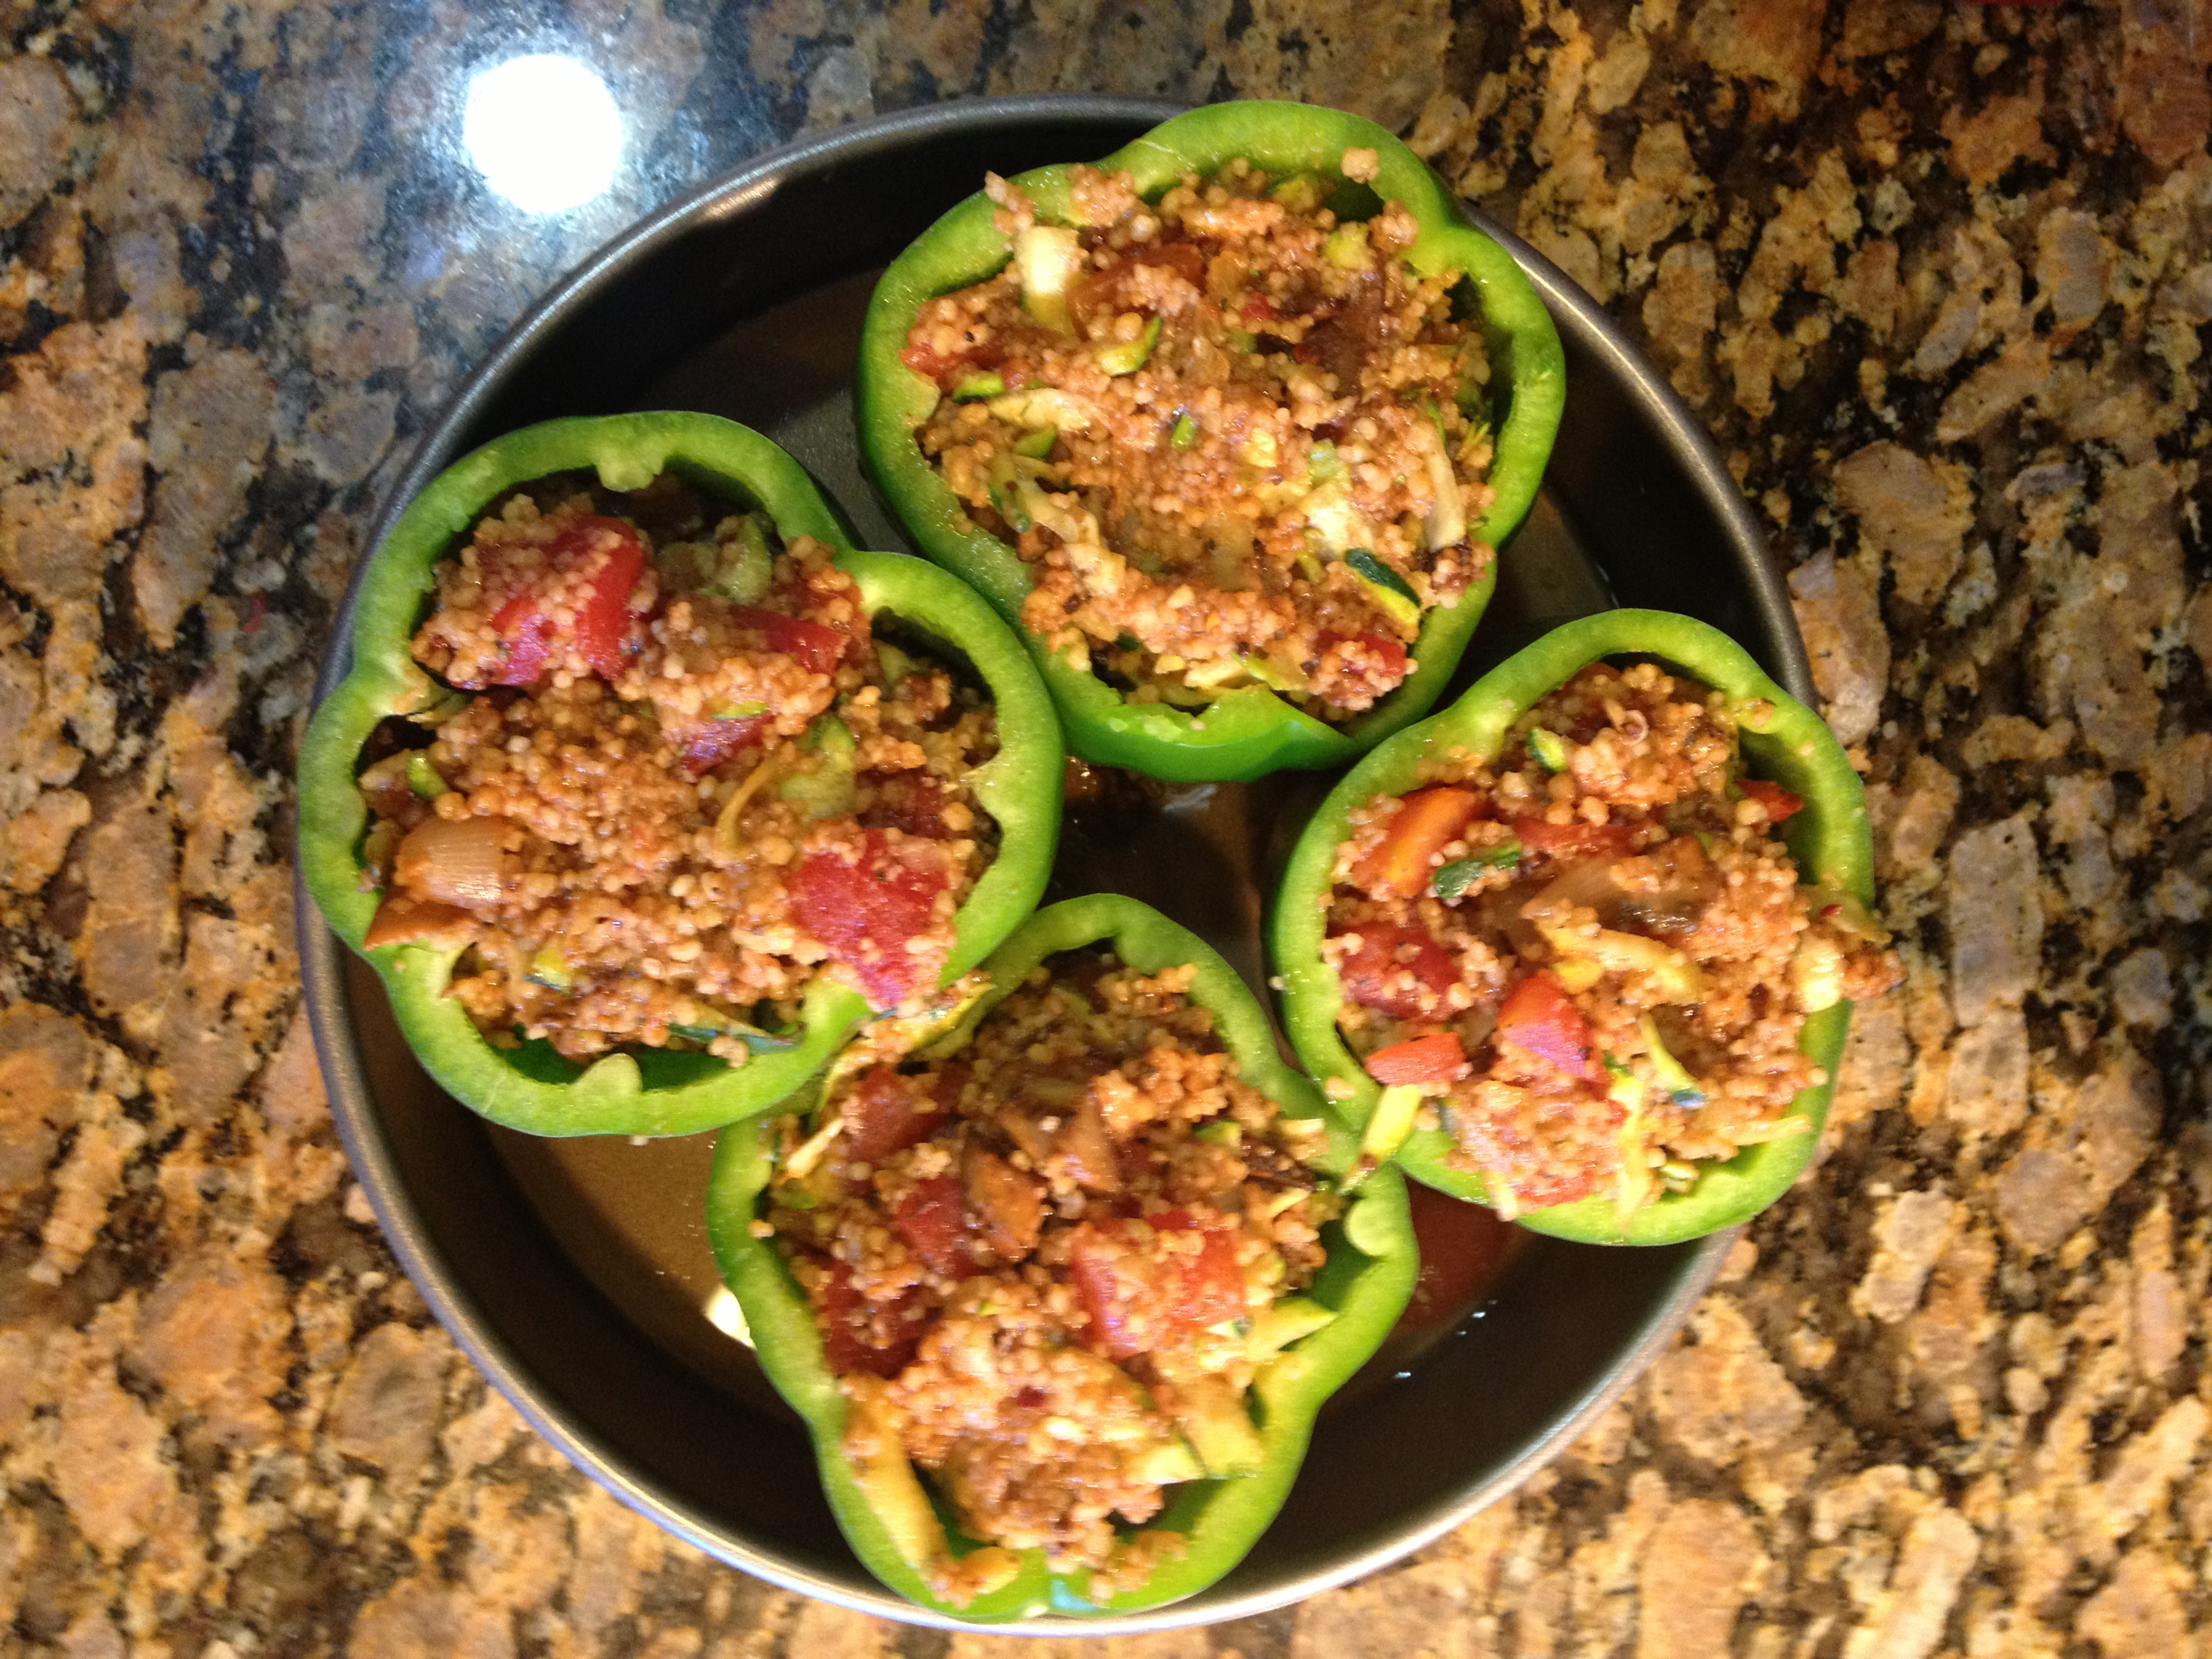 Recipes for Busy Nights: Vegetarian Stuffed Peppers